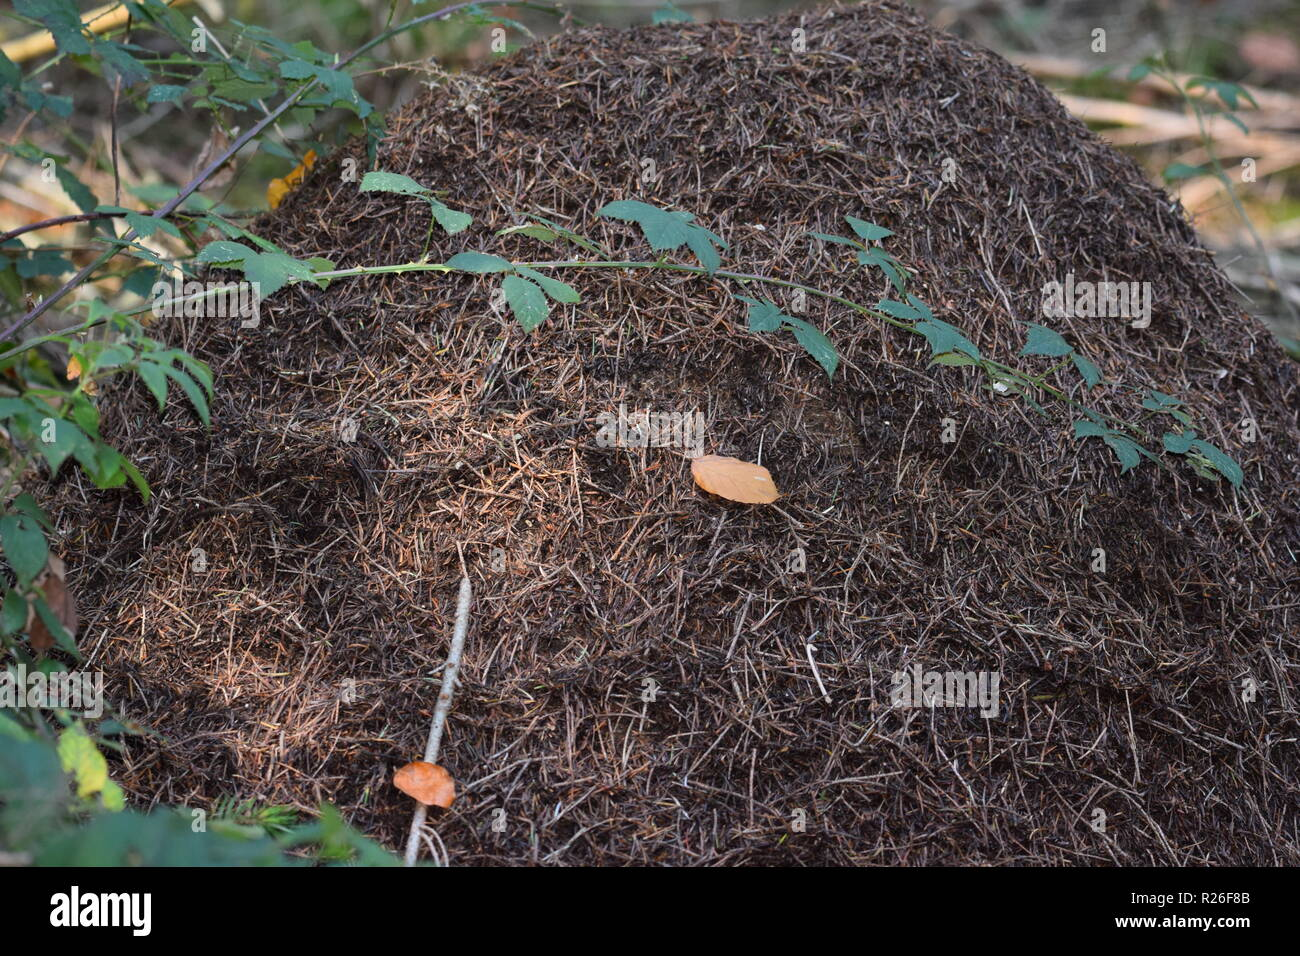 Ant Colonies Stock Photos & Ant Colonies Stock Images - Alamy